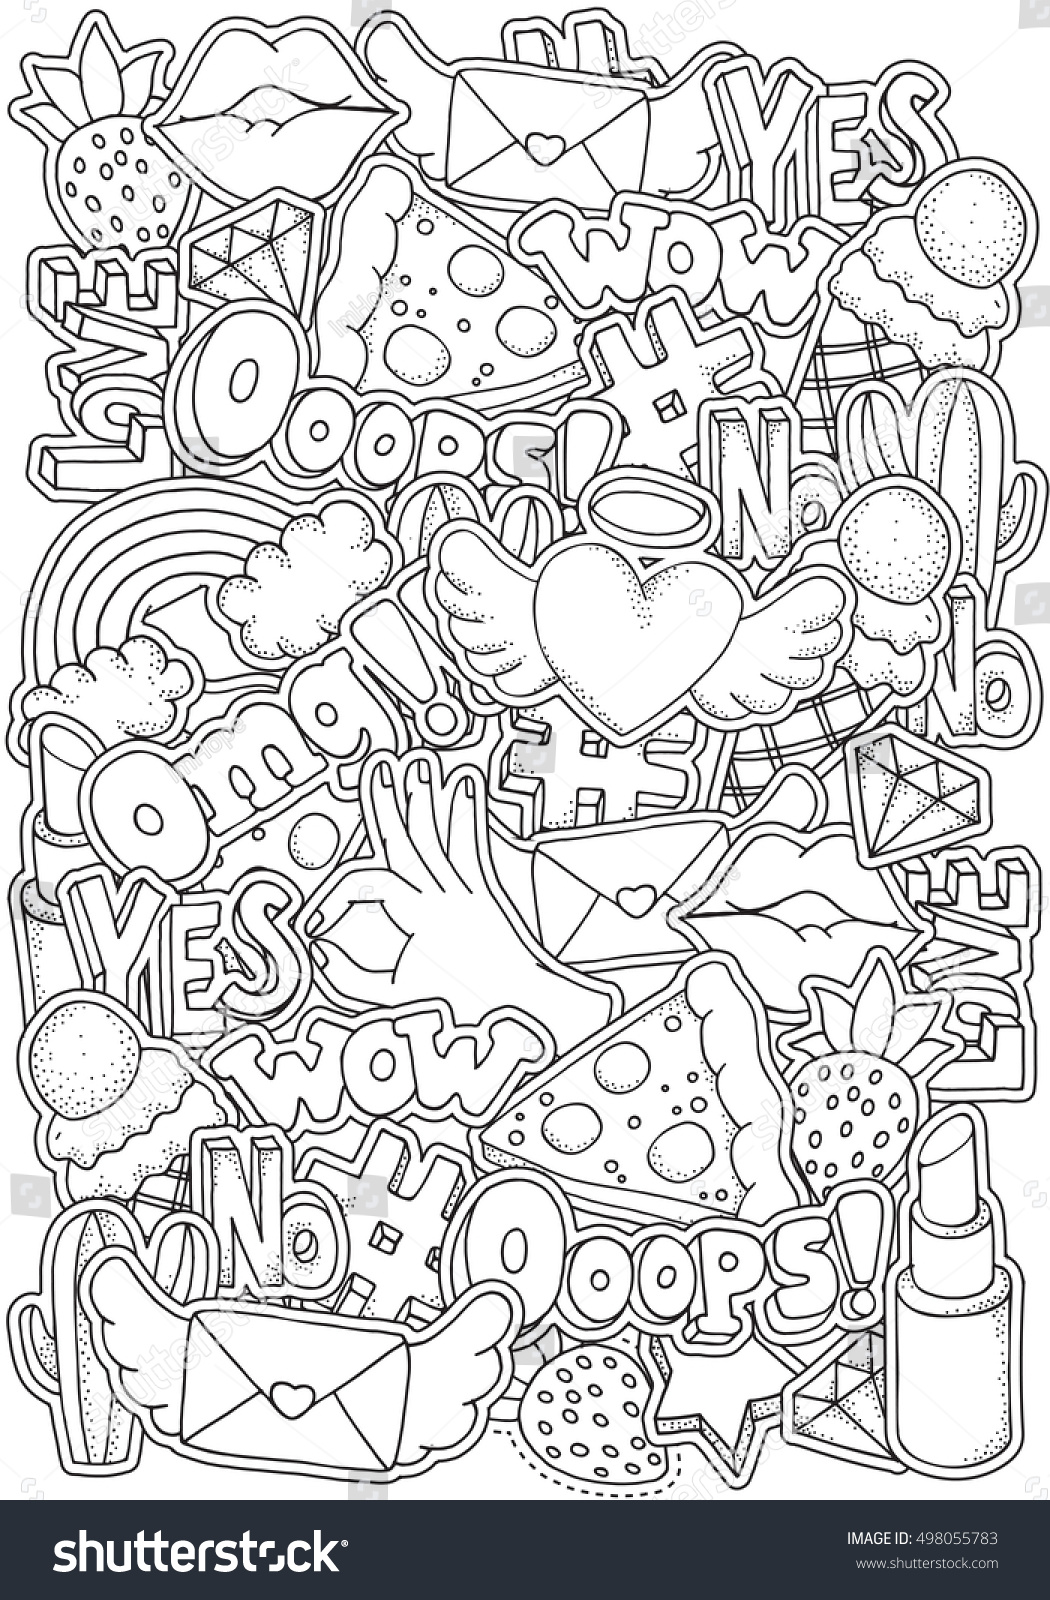 Coloring Book Page For Adult With Fashion Patch Badges In Cartoon 80s 90s Comic Style